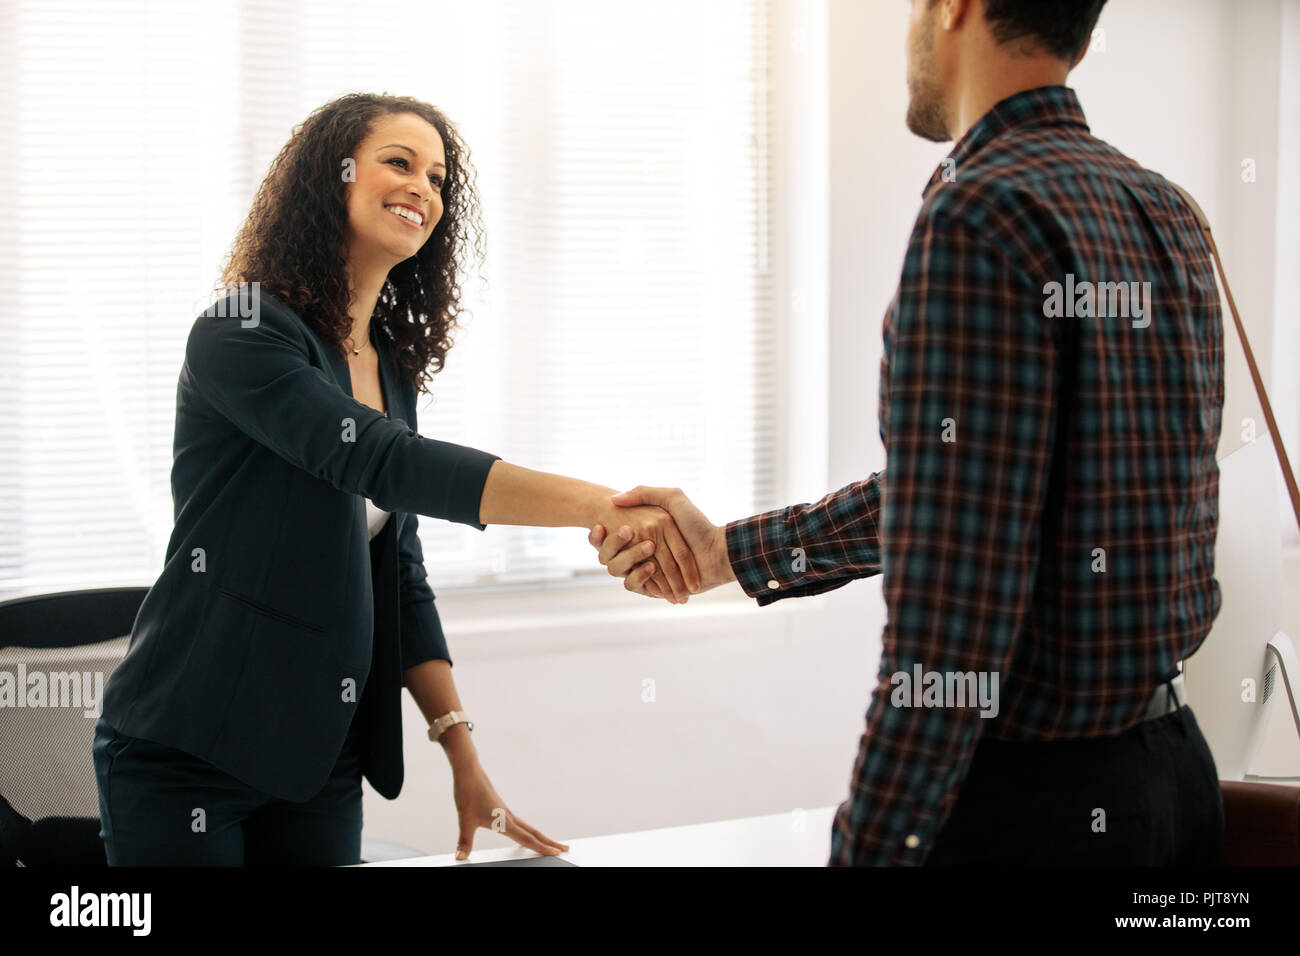 Business partners meeting in office shaking hand. Woman entrepreneur in formal clothes greeting a businessman at her table in office. - Stock Image